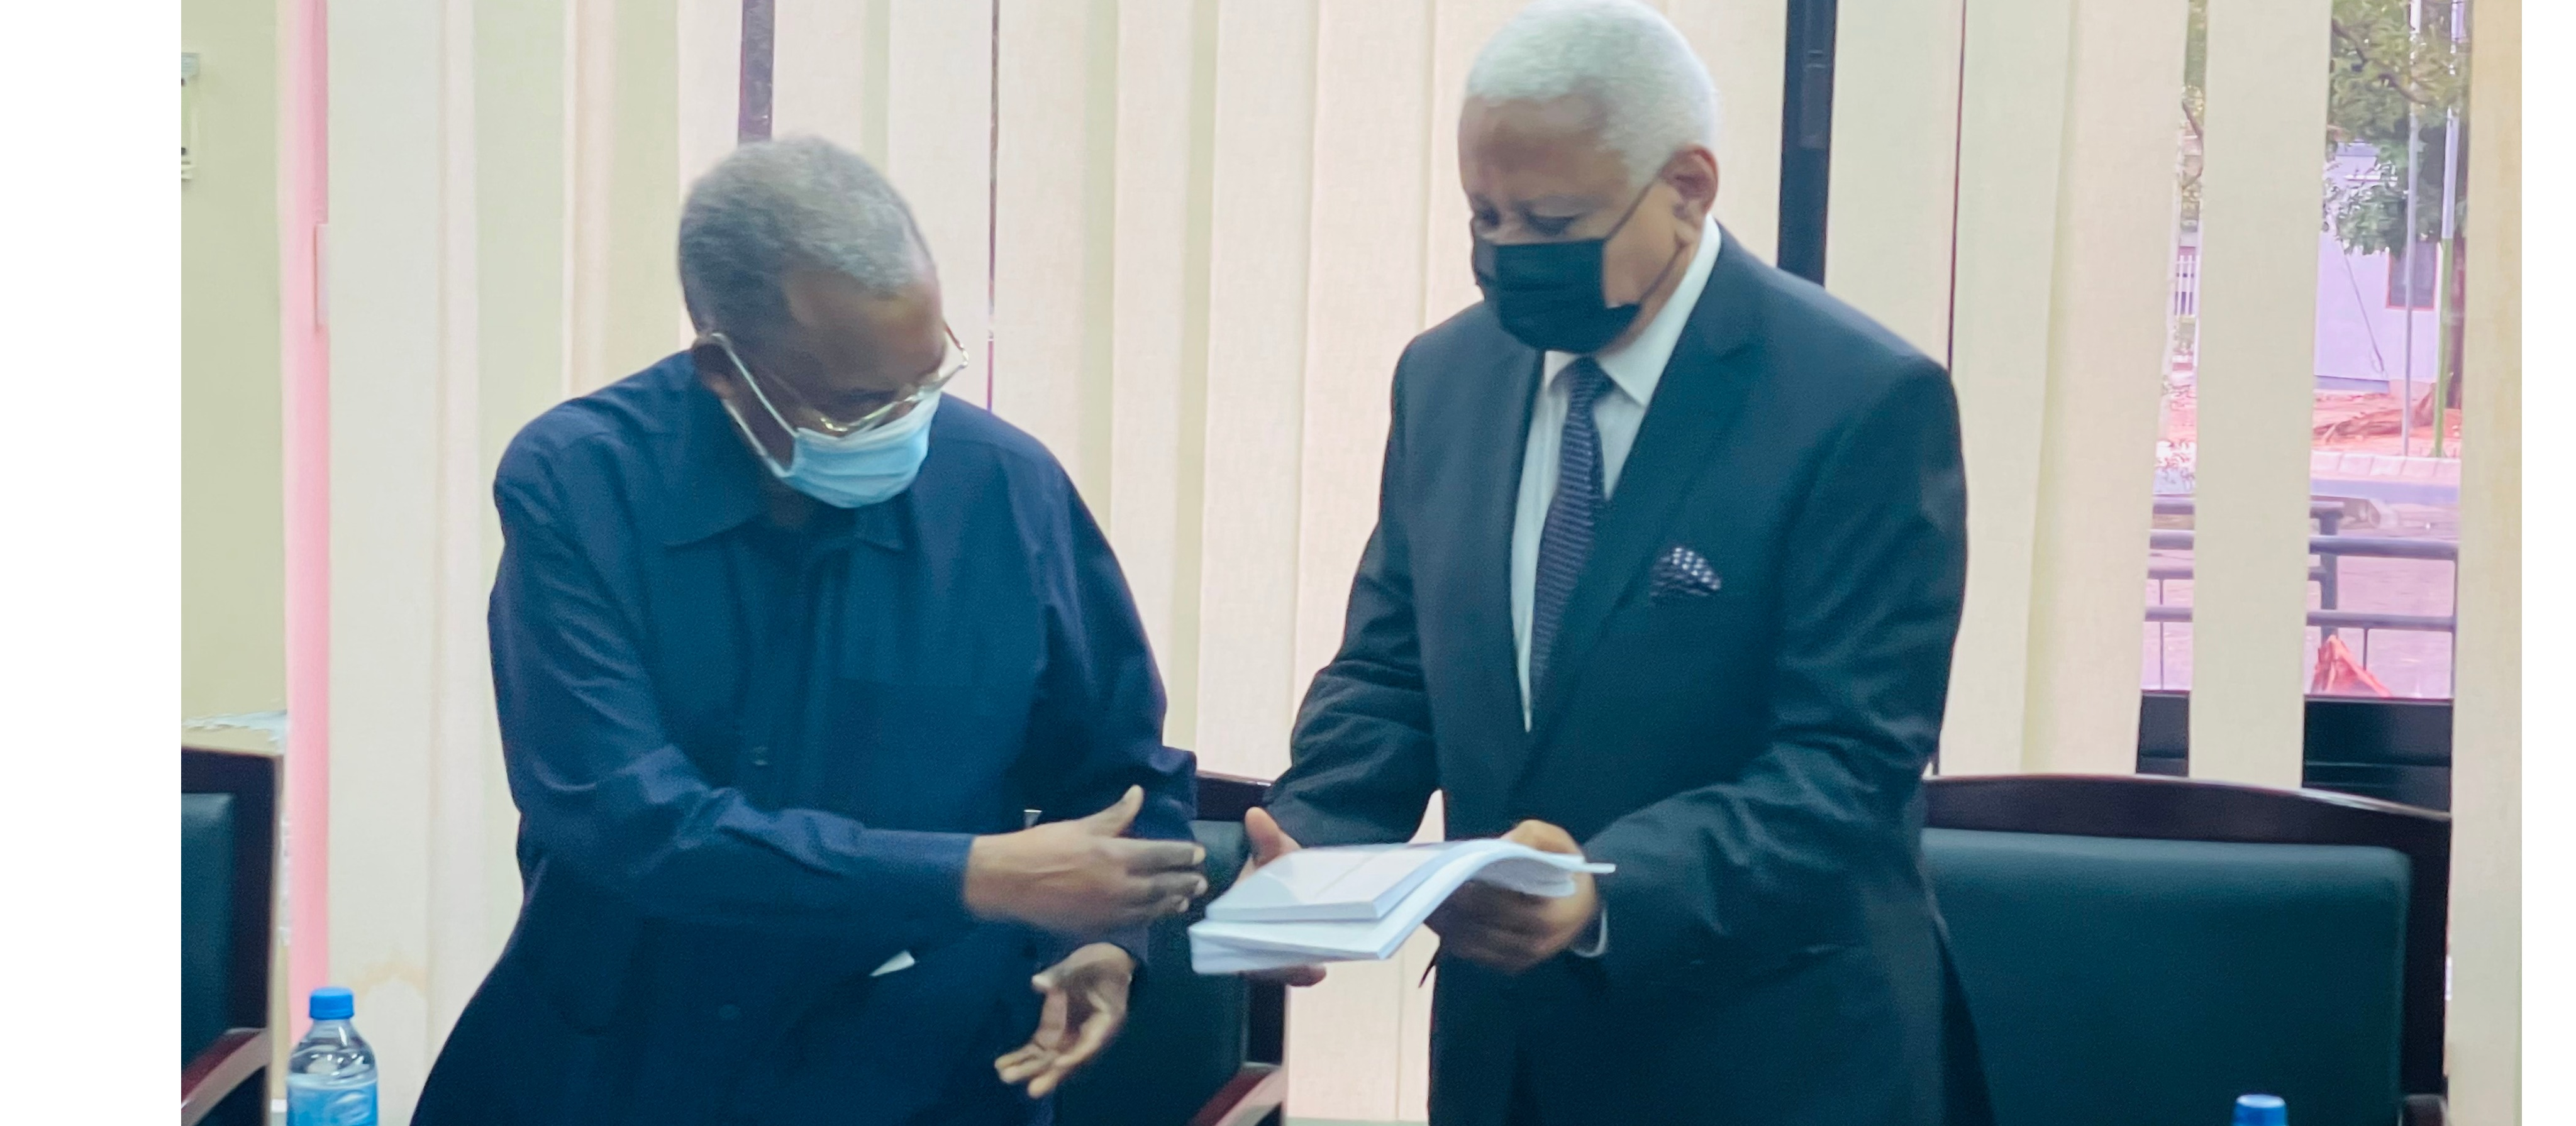 The former Ardhi University Chancellor, Former Prime Minister Hon. Cleopa David Msuya and the newly appointed Chancellor the Former Chief Justice Hon. Mohammed Chande Othman during the handing over ceremony held at ARU on 9th September, 2021